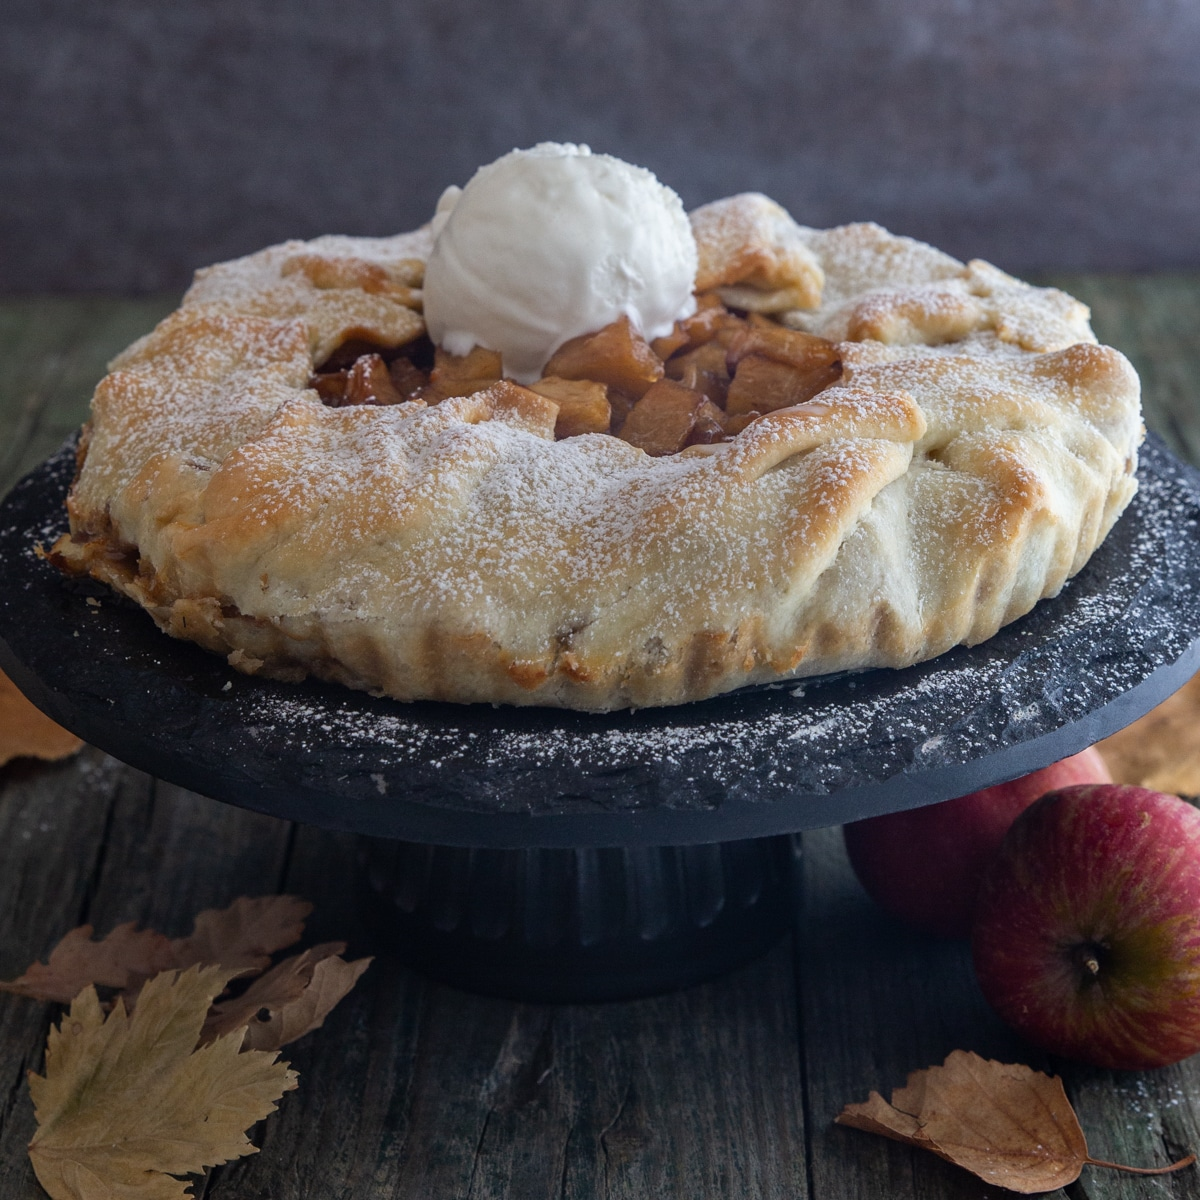 Apple galette with a scoop of ice cream on top.